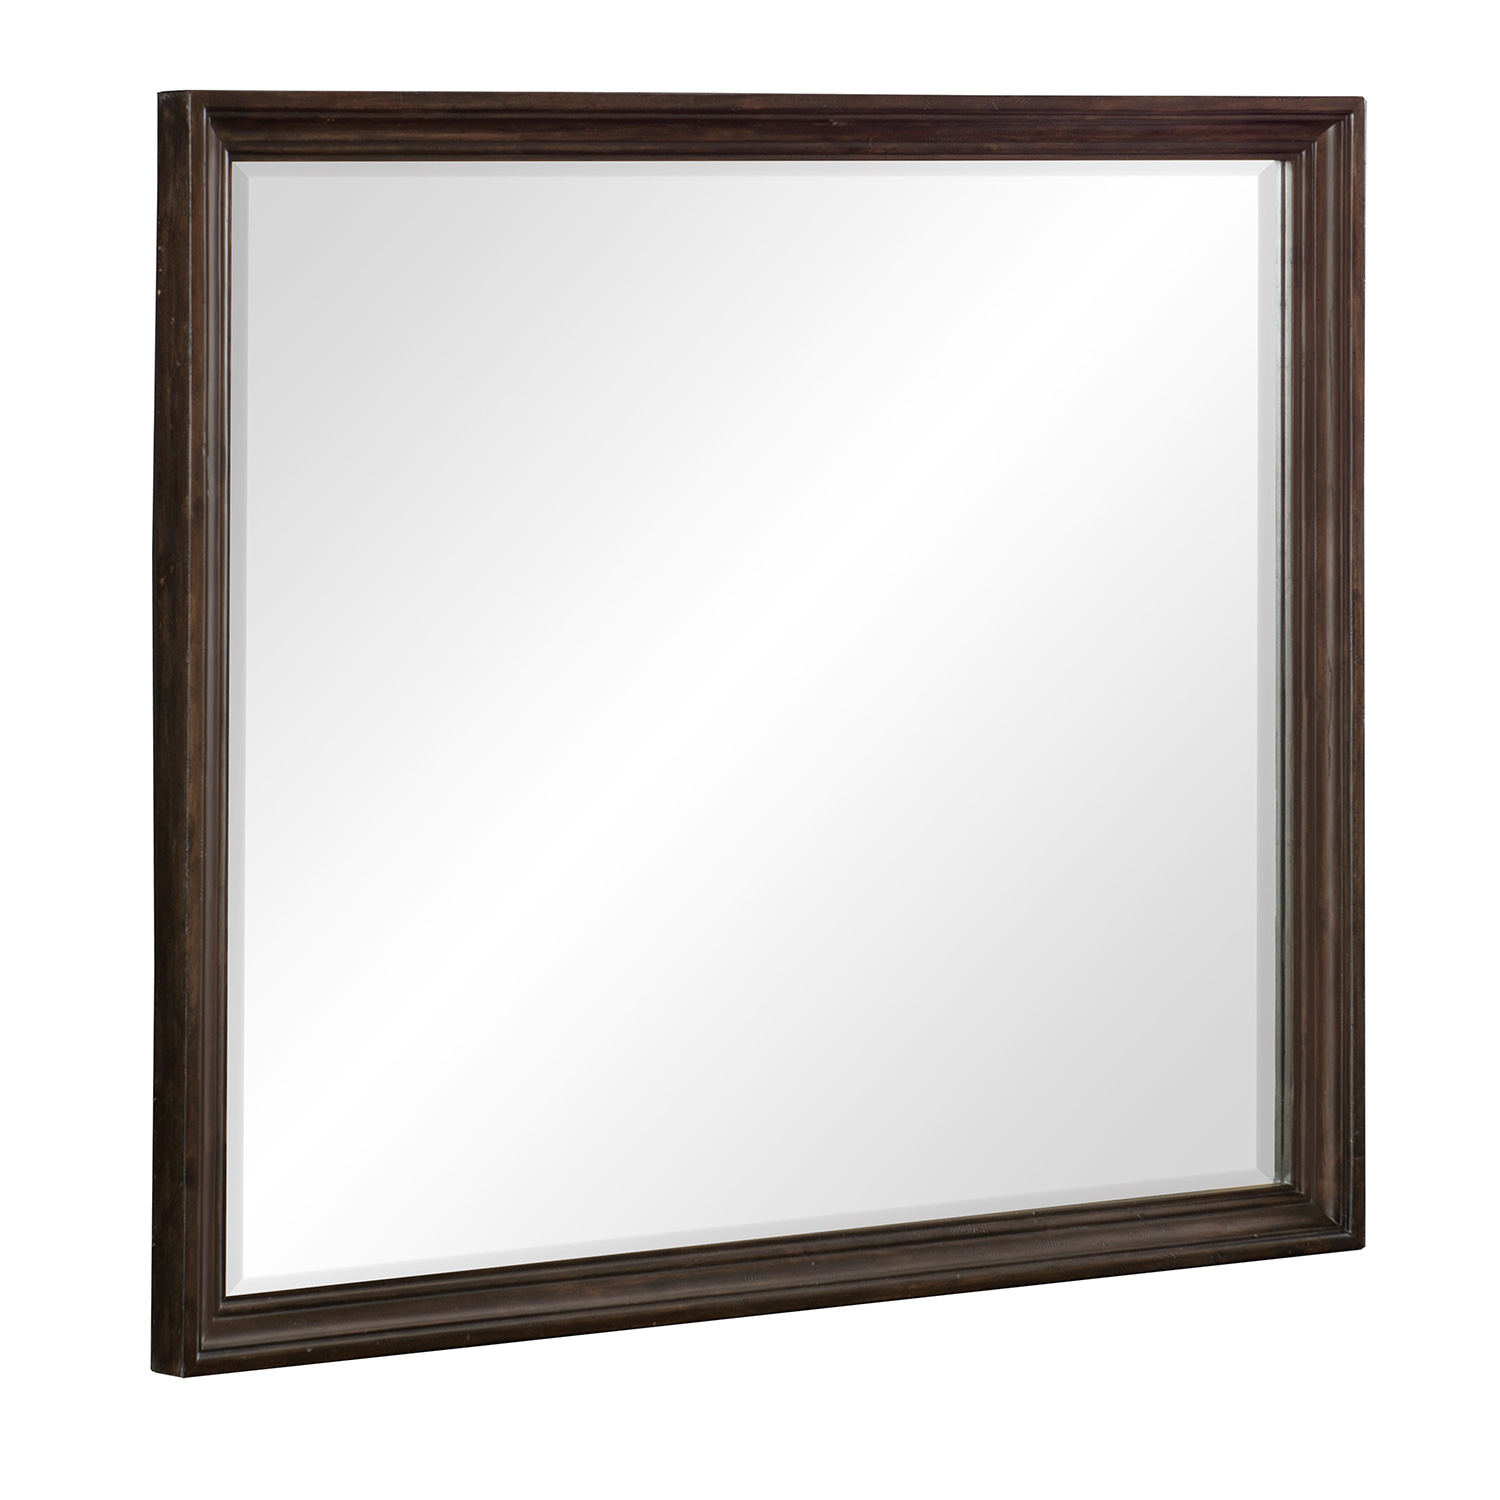 Homelegance Cardano Mirror - Driftwood Charcoal over Acacia Solids and Veneers